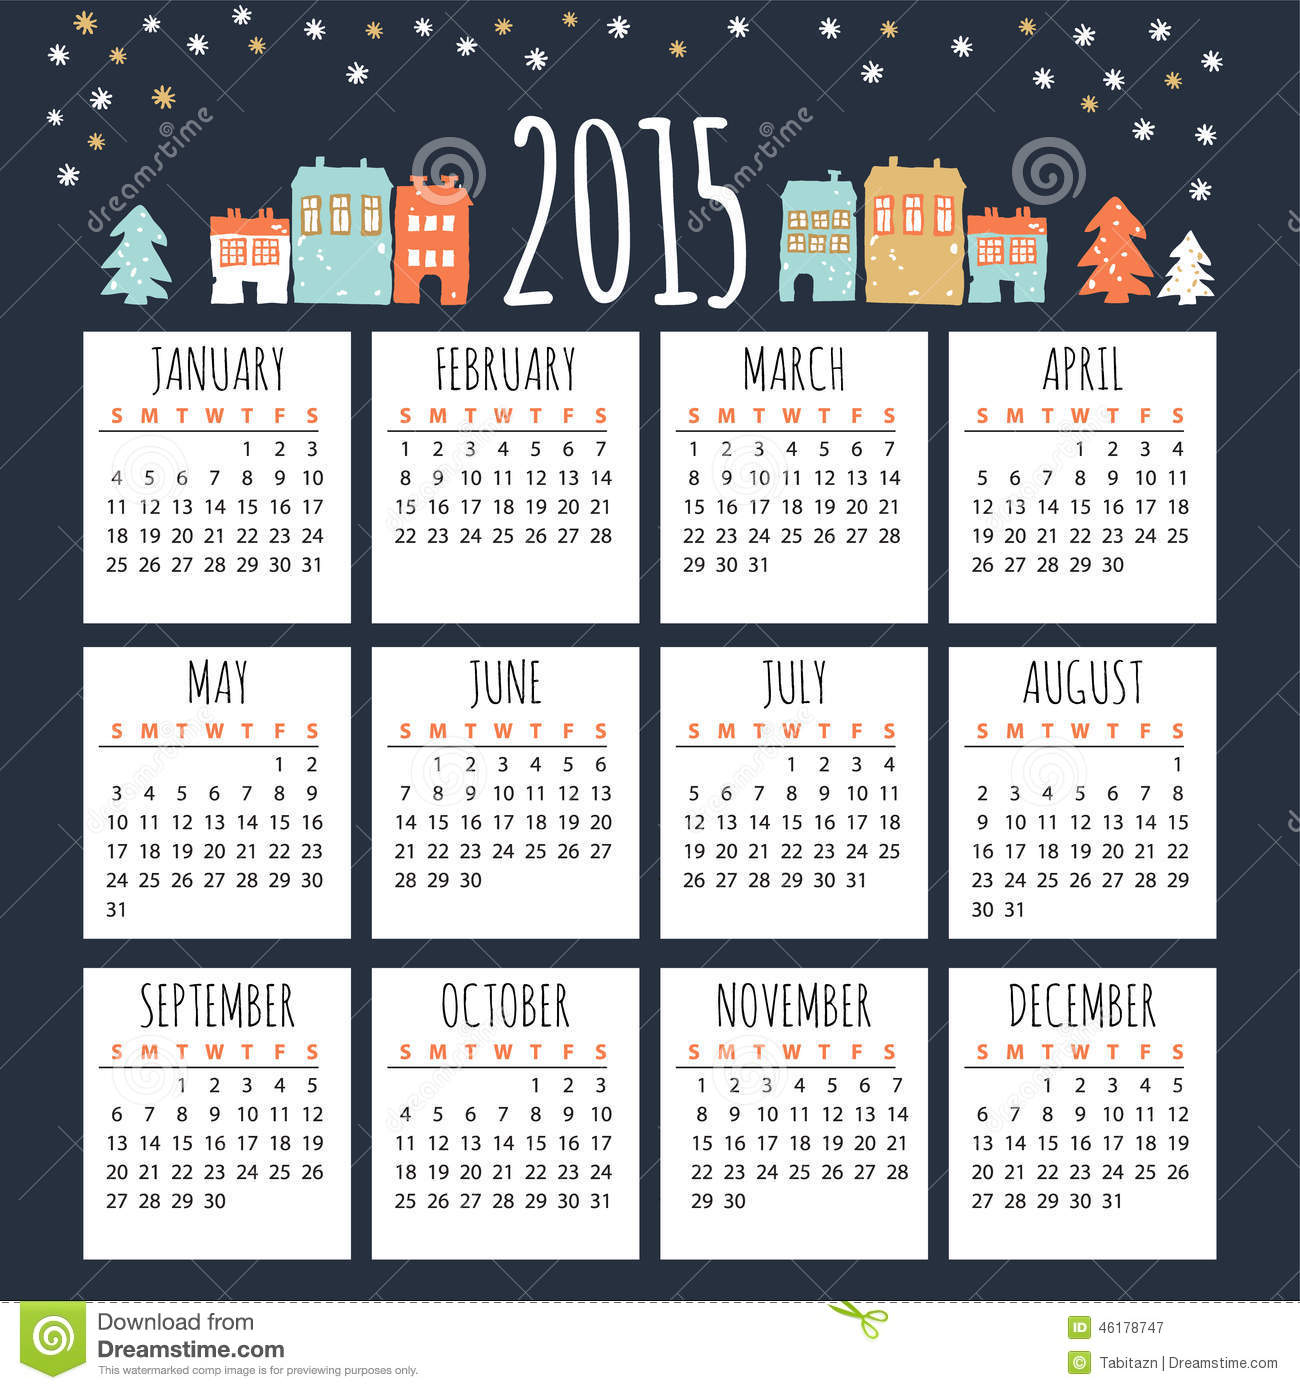 Calendar 2015 With Cute Winter Houses Illustration Stock Vector Image 46178747